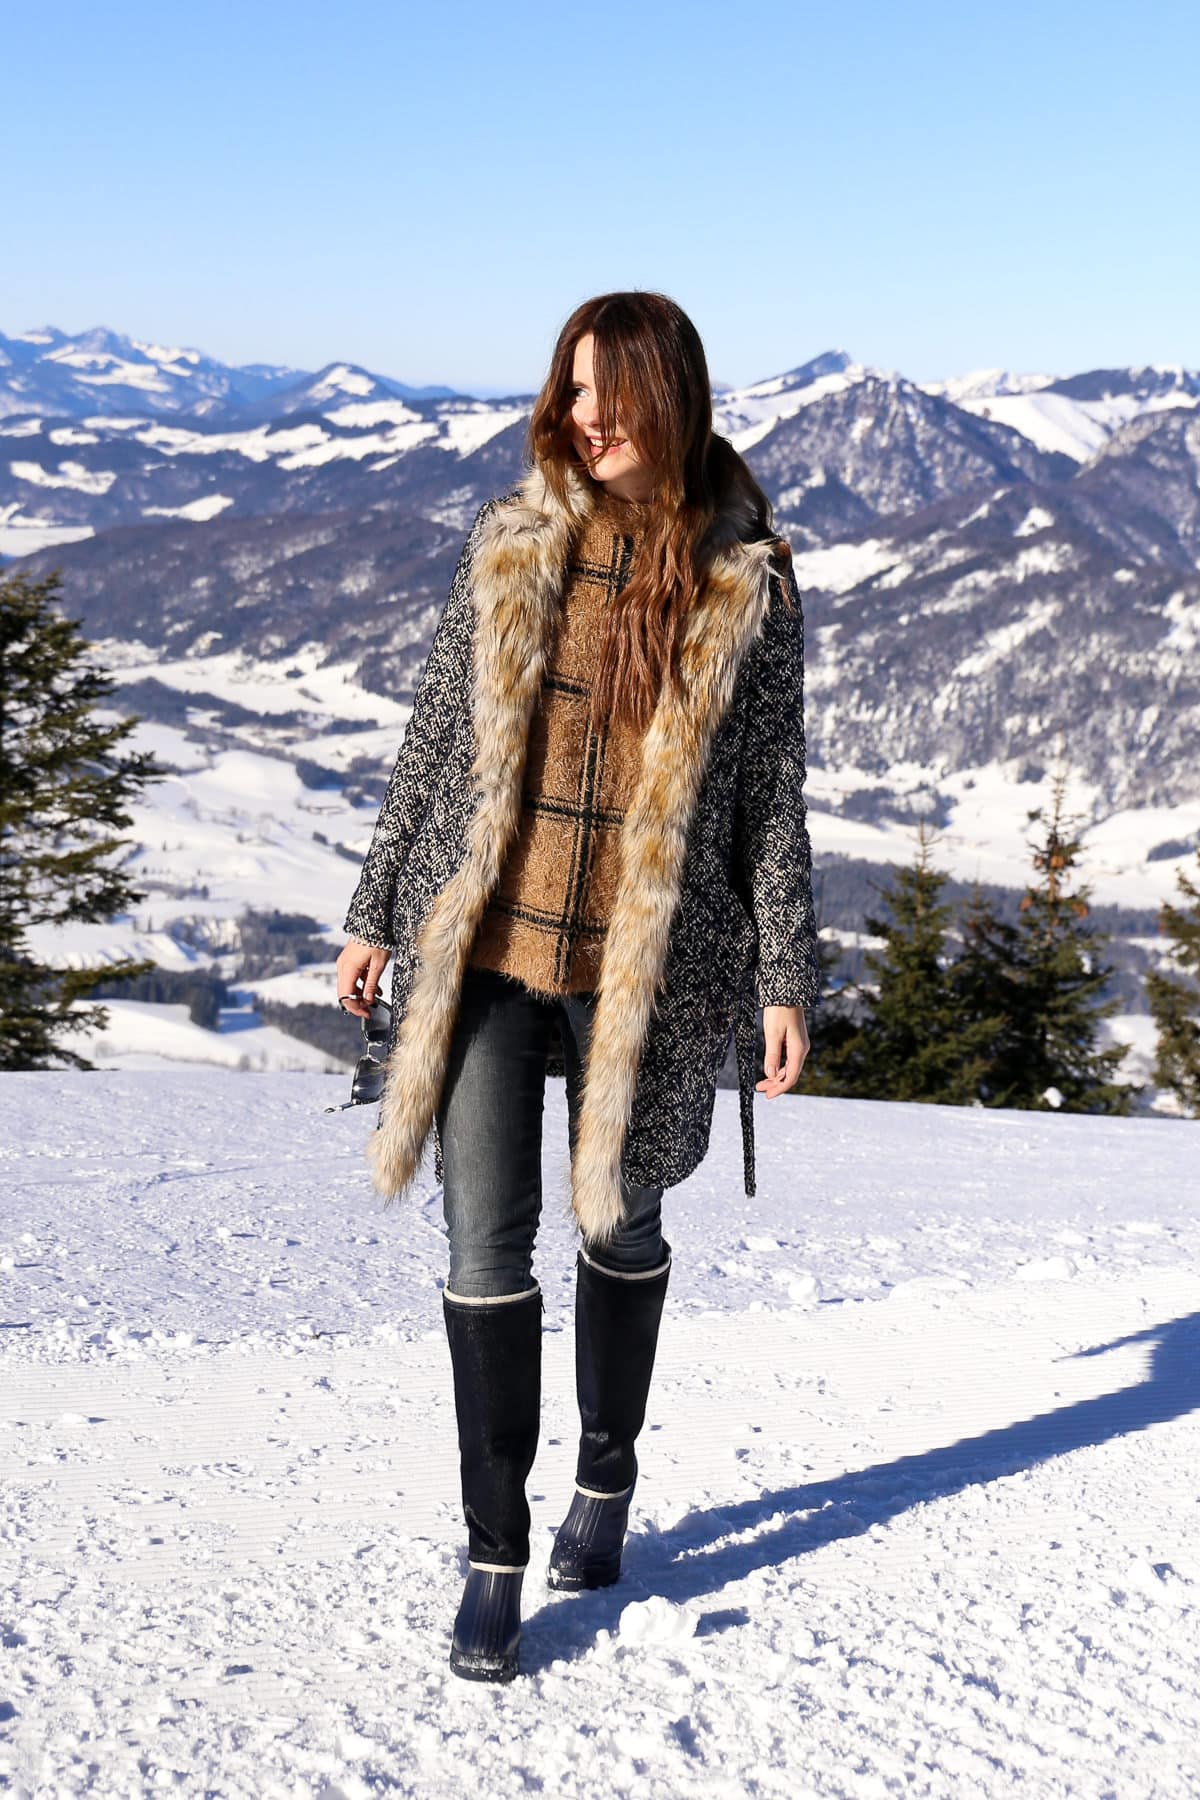 Winter Outfit in den Tiroler Alpen: Warm & stylisch mit Sorel Boots